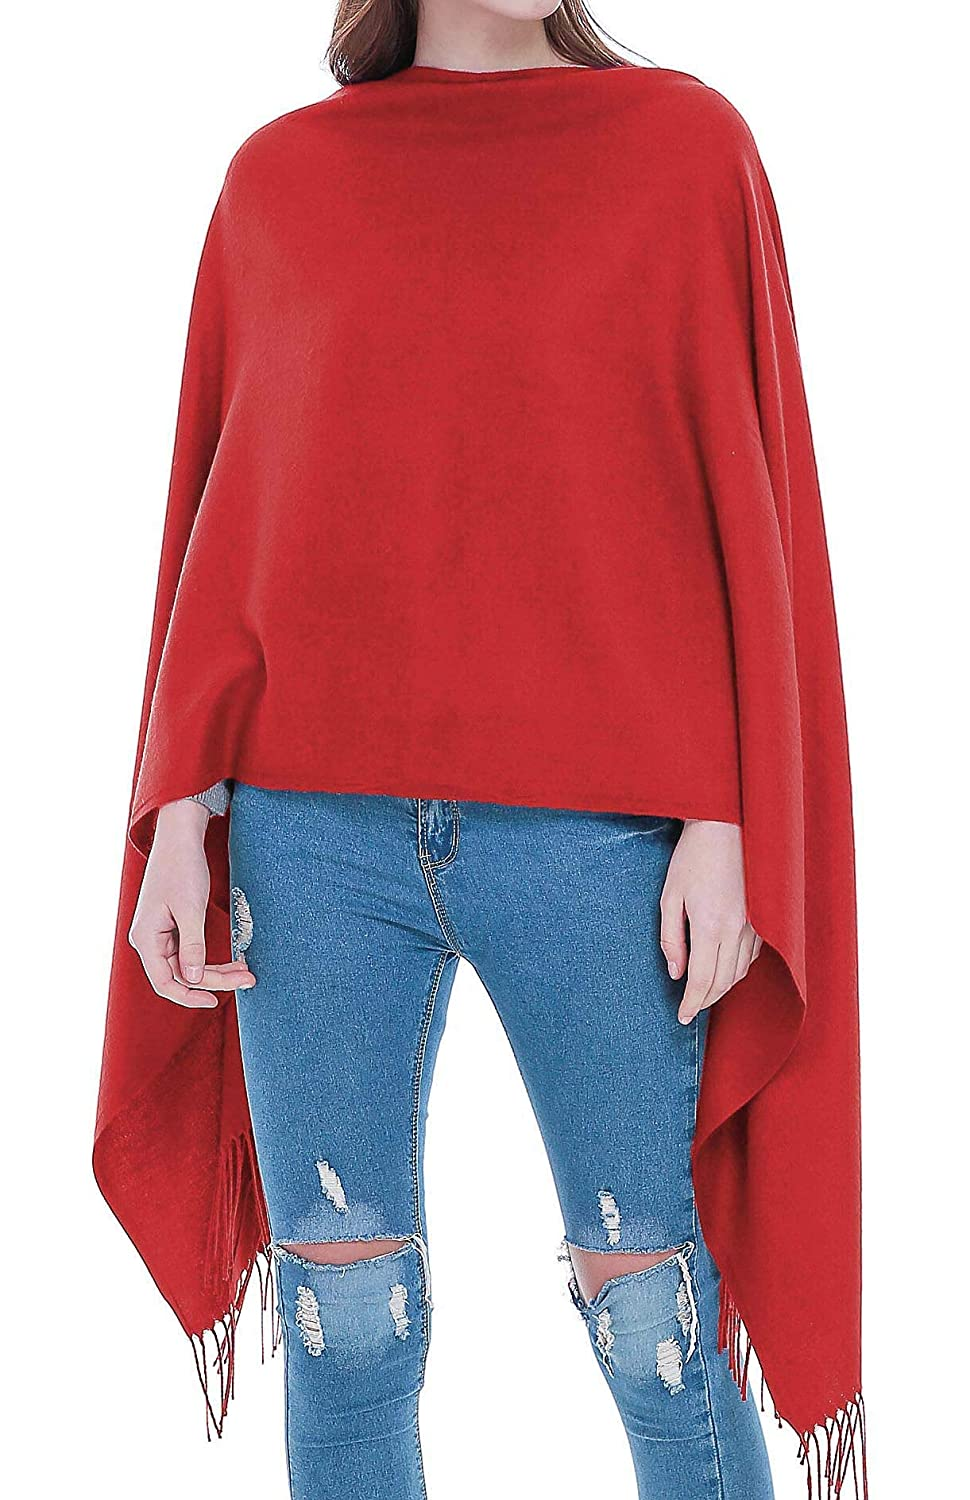 Red Rheane Large Cashmere Feel Pashmina Shawl Scarf in Solid colors